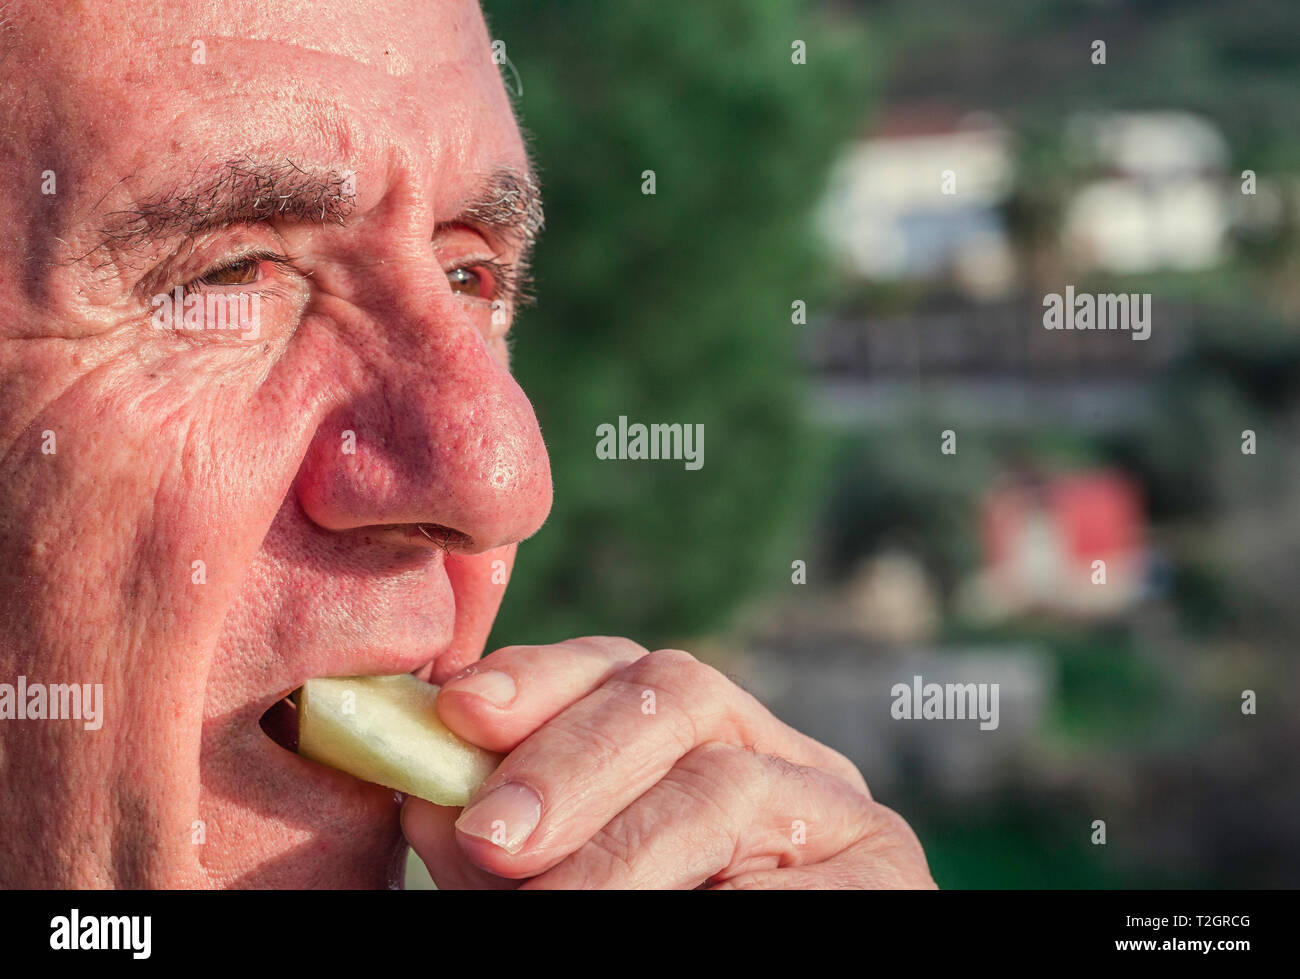 Close-up portrait of a senior of 70-79 years eating apple at outdoor, healthy lifestyle concept - Stock Image